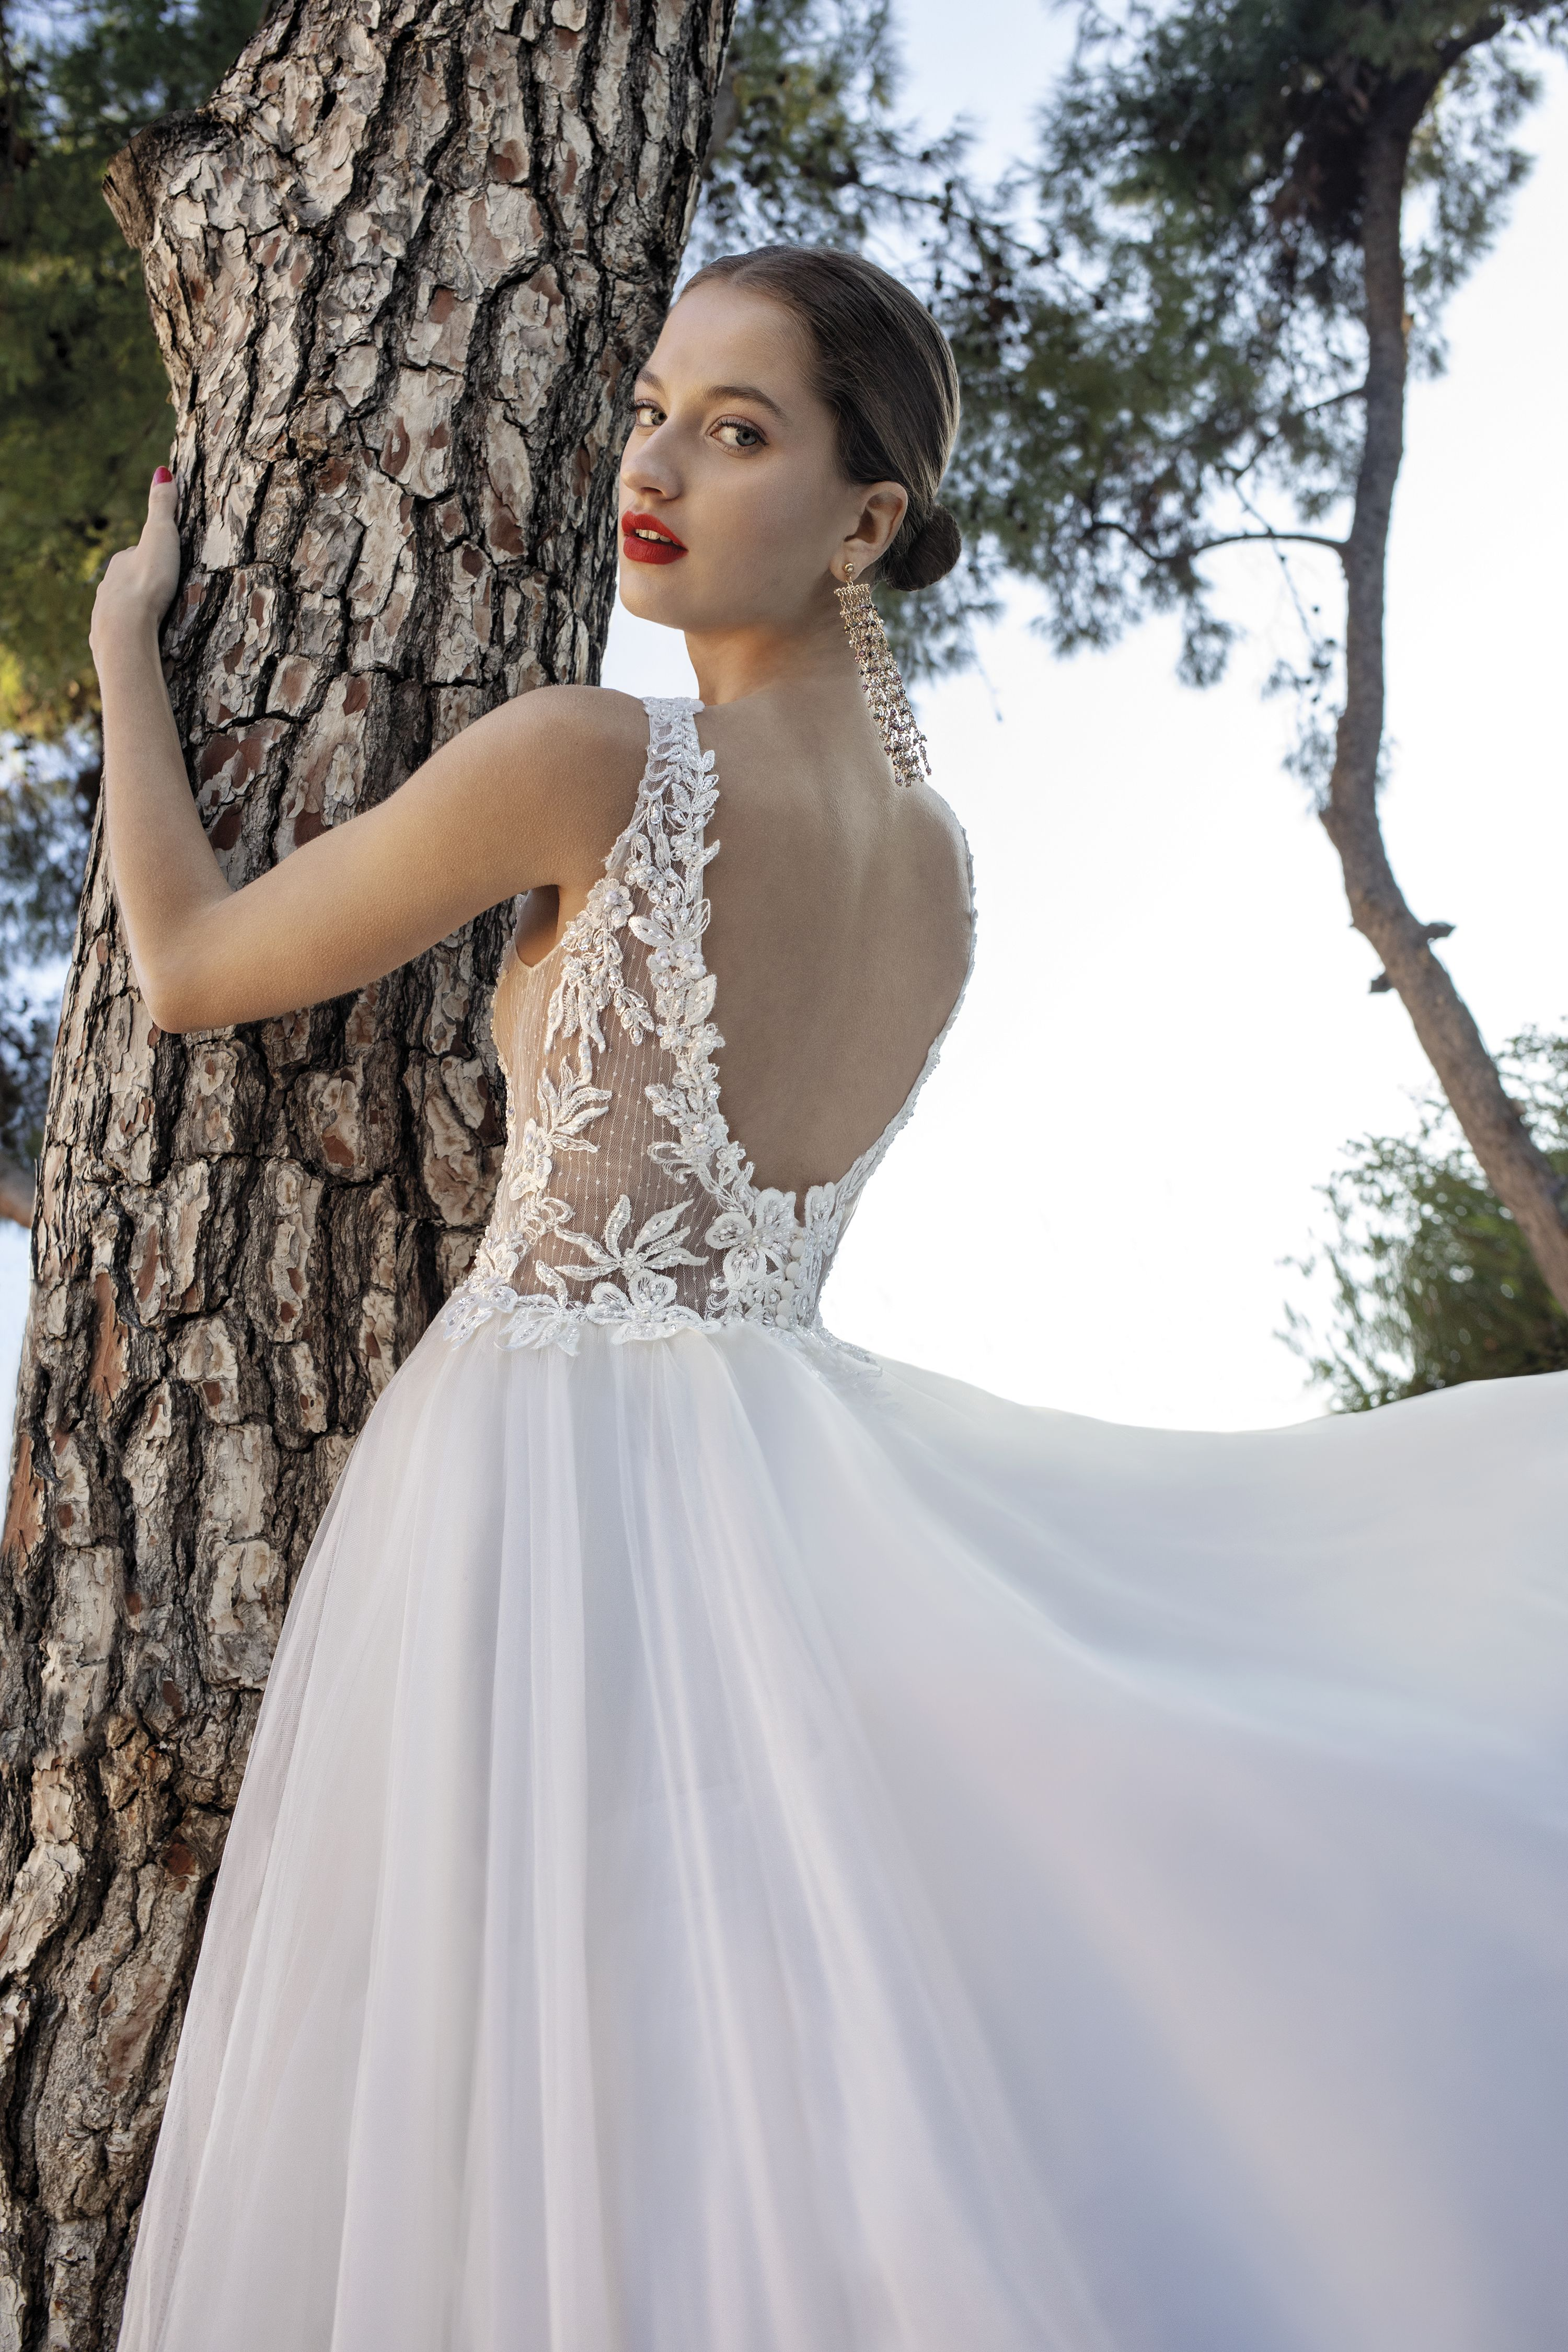 Pin by Interbride GmbH on #Brides - trends 2020 | Wedding ...